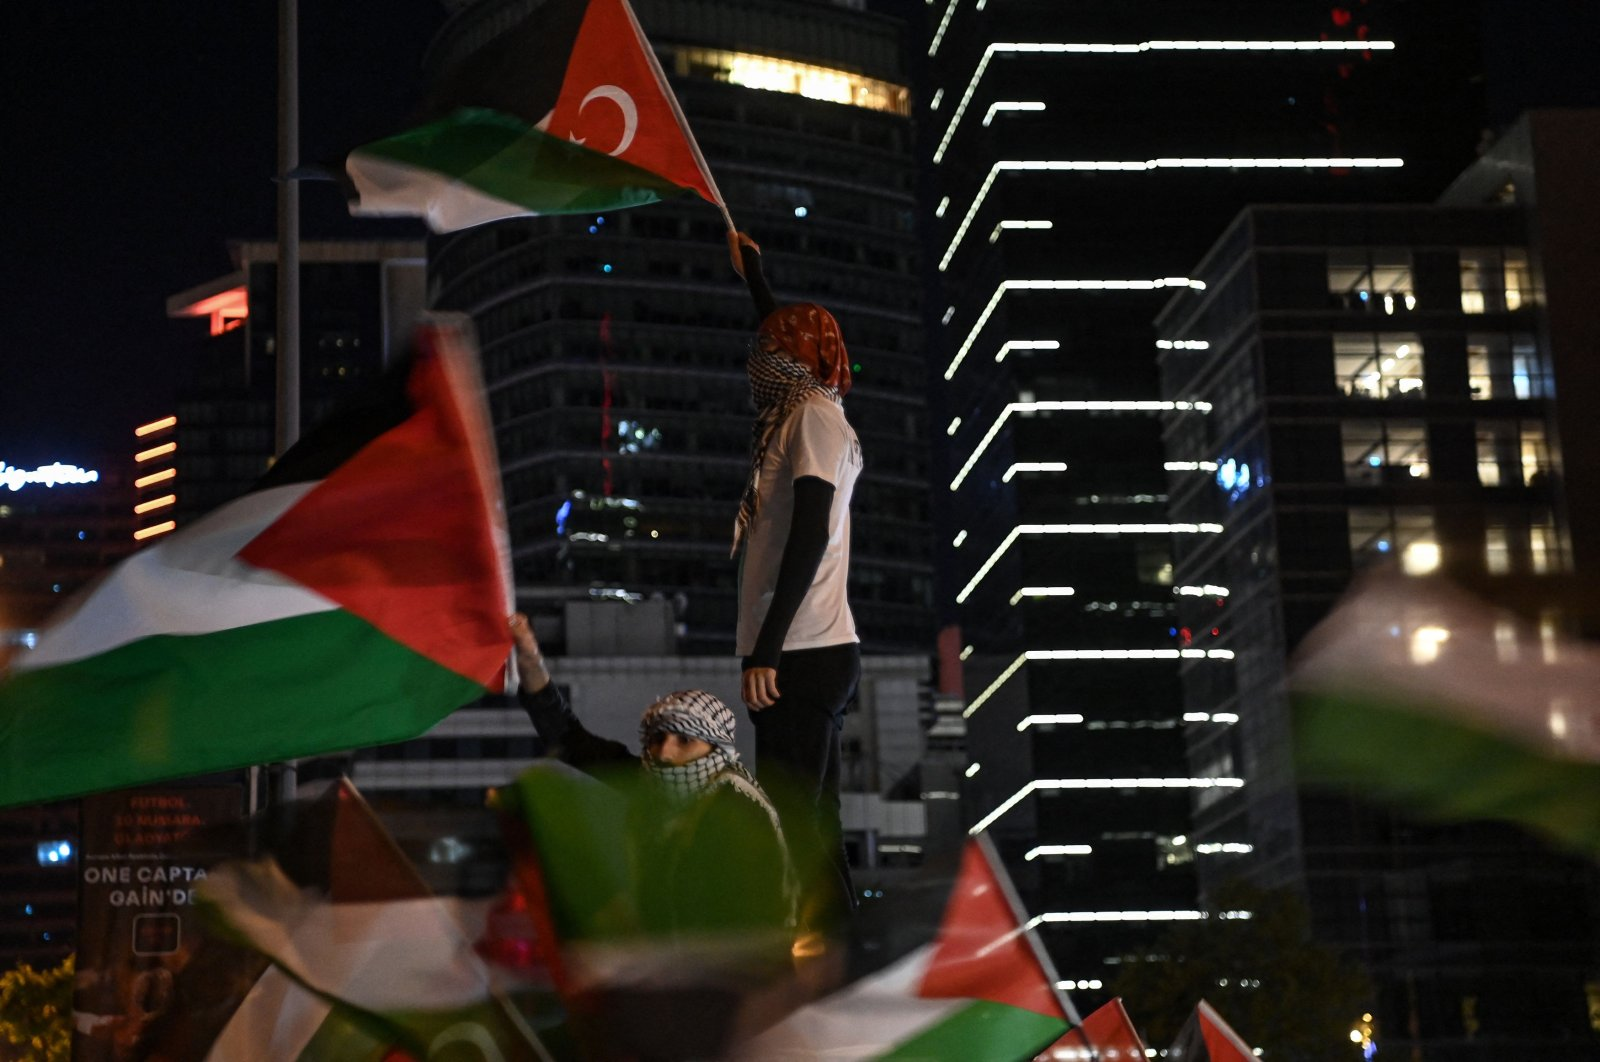 Turkey intensifies diplomacy for Palestine amid Israeli attacks